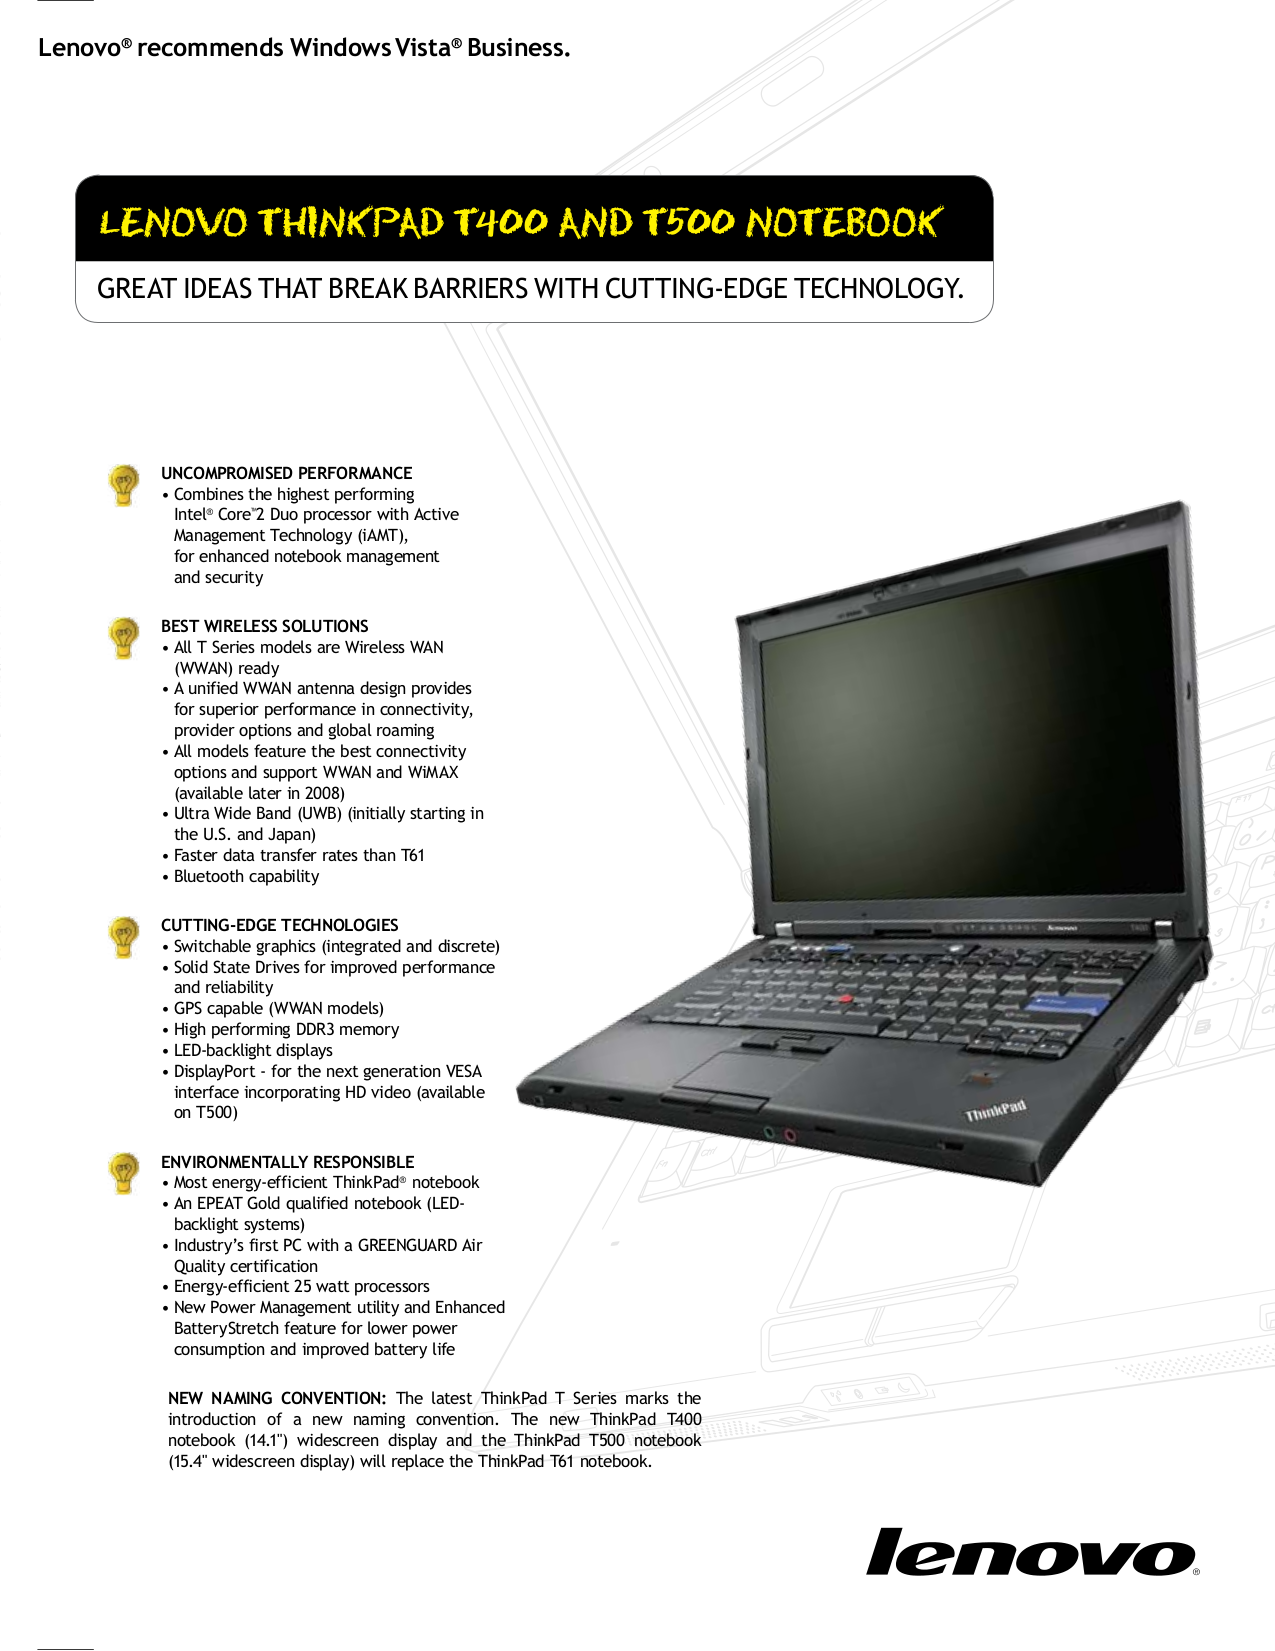 ibm thinkpad t400 manual free owners manual u2022 rh wordworksbysea com thinkpad t400 repair manual thinkpad t400 repair manual